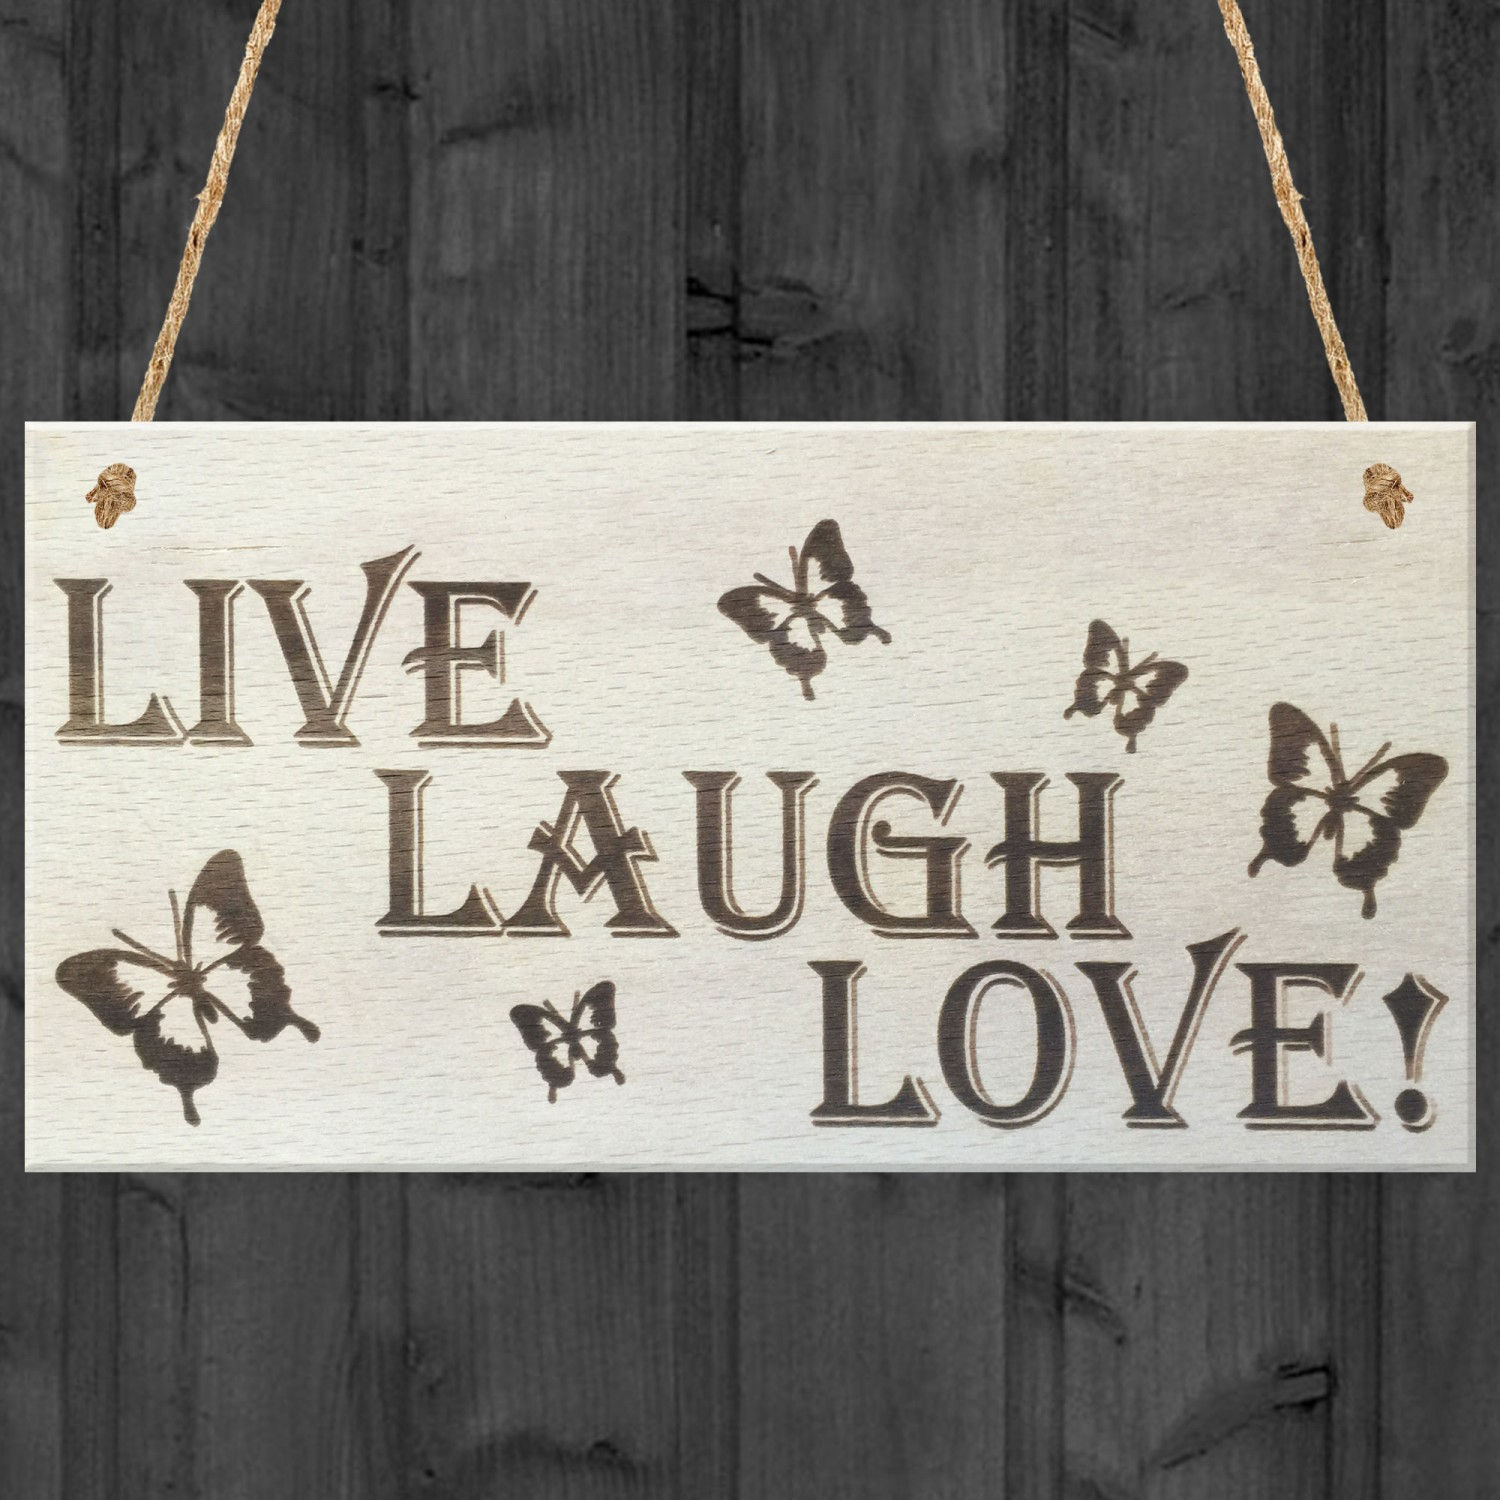 Live Laugh Love Wooden Hanging Plaque Gift Friendship Sign,What A Beautiful Name Chords Pdf E